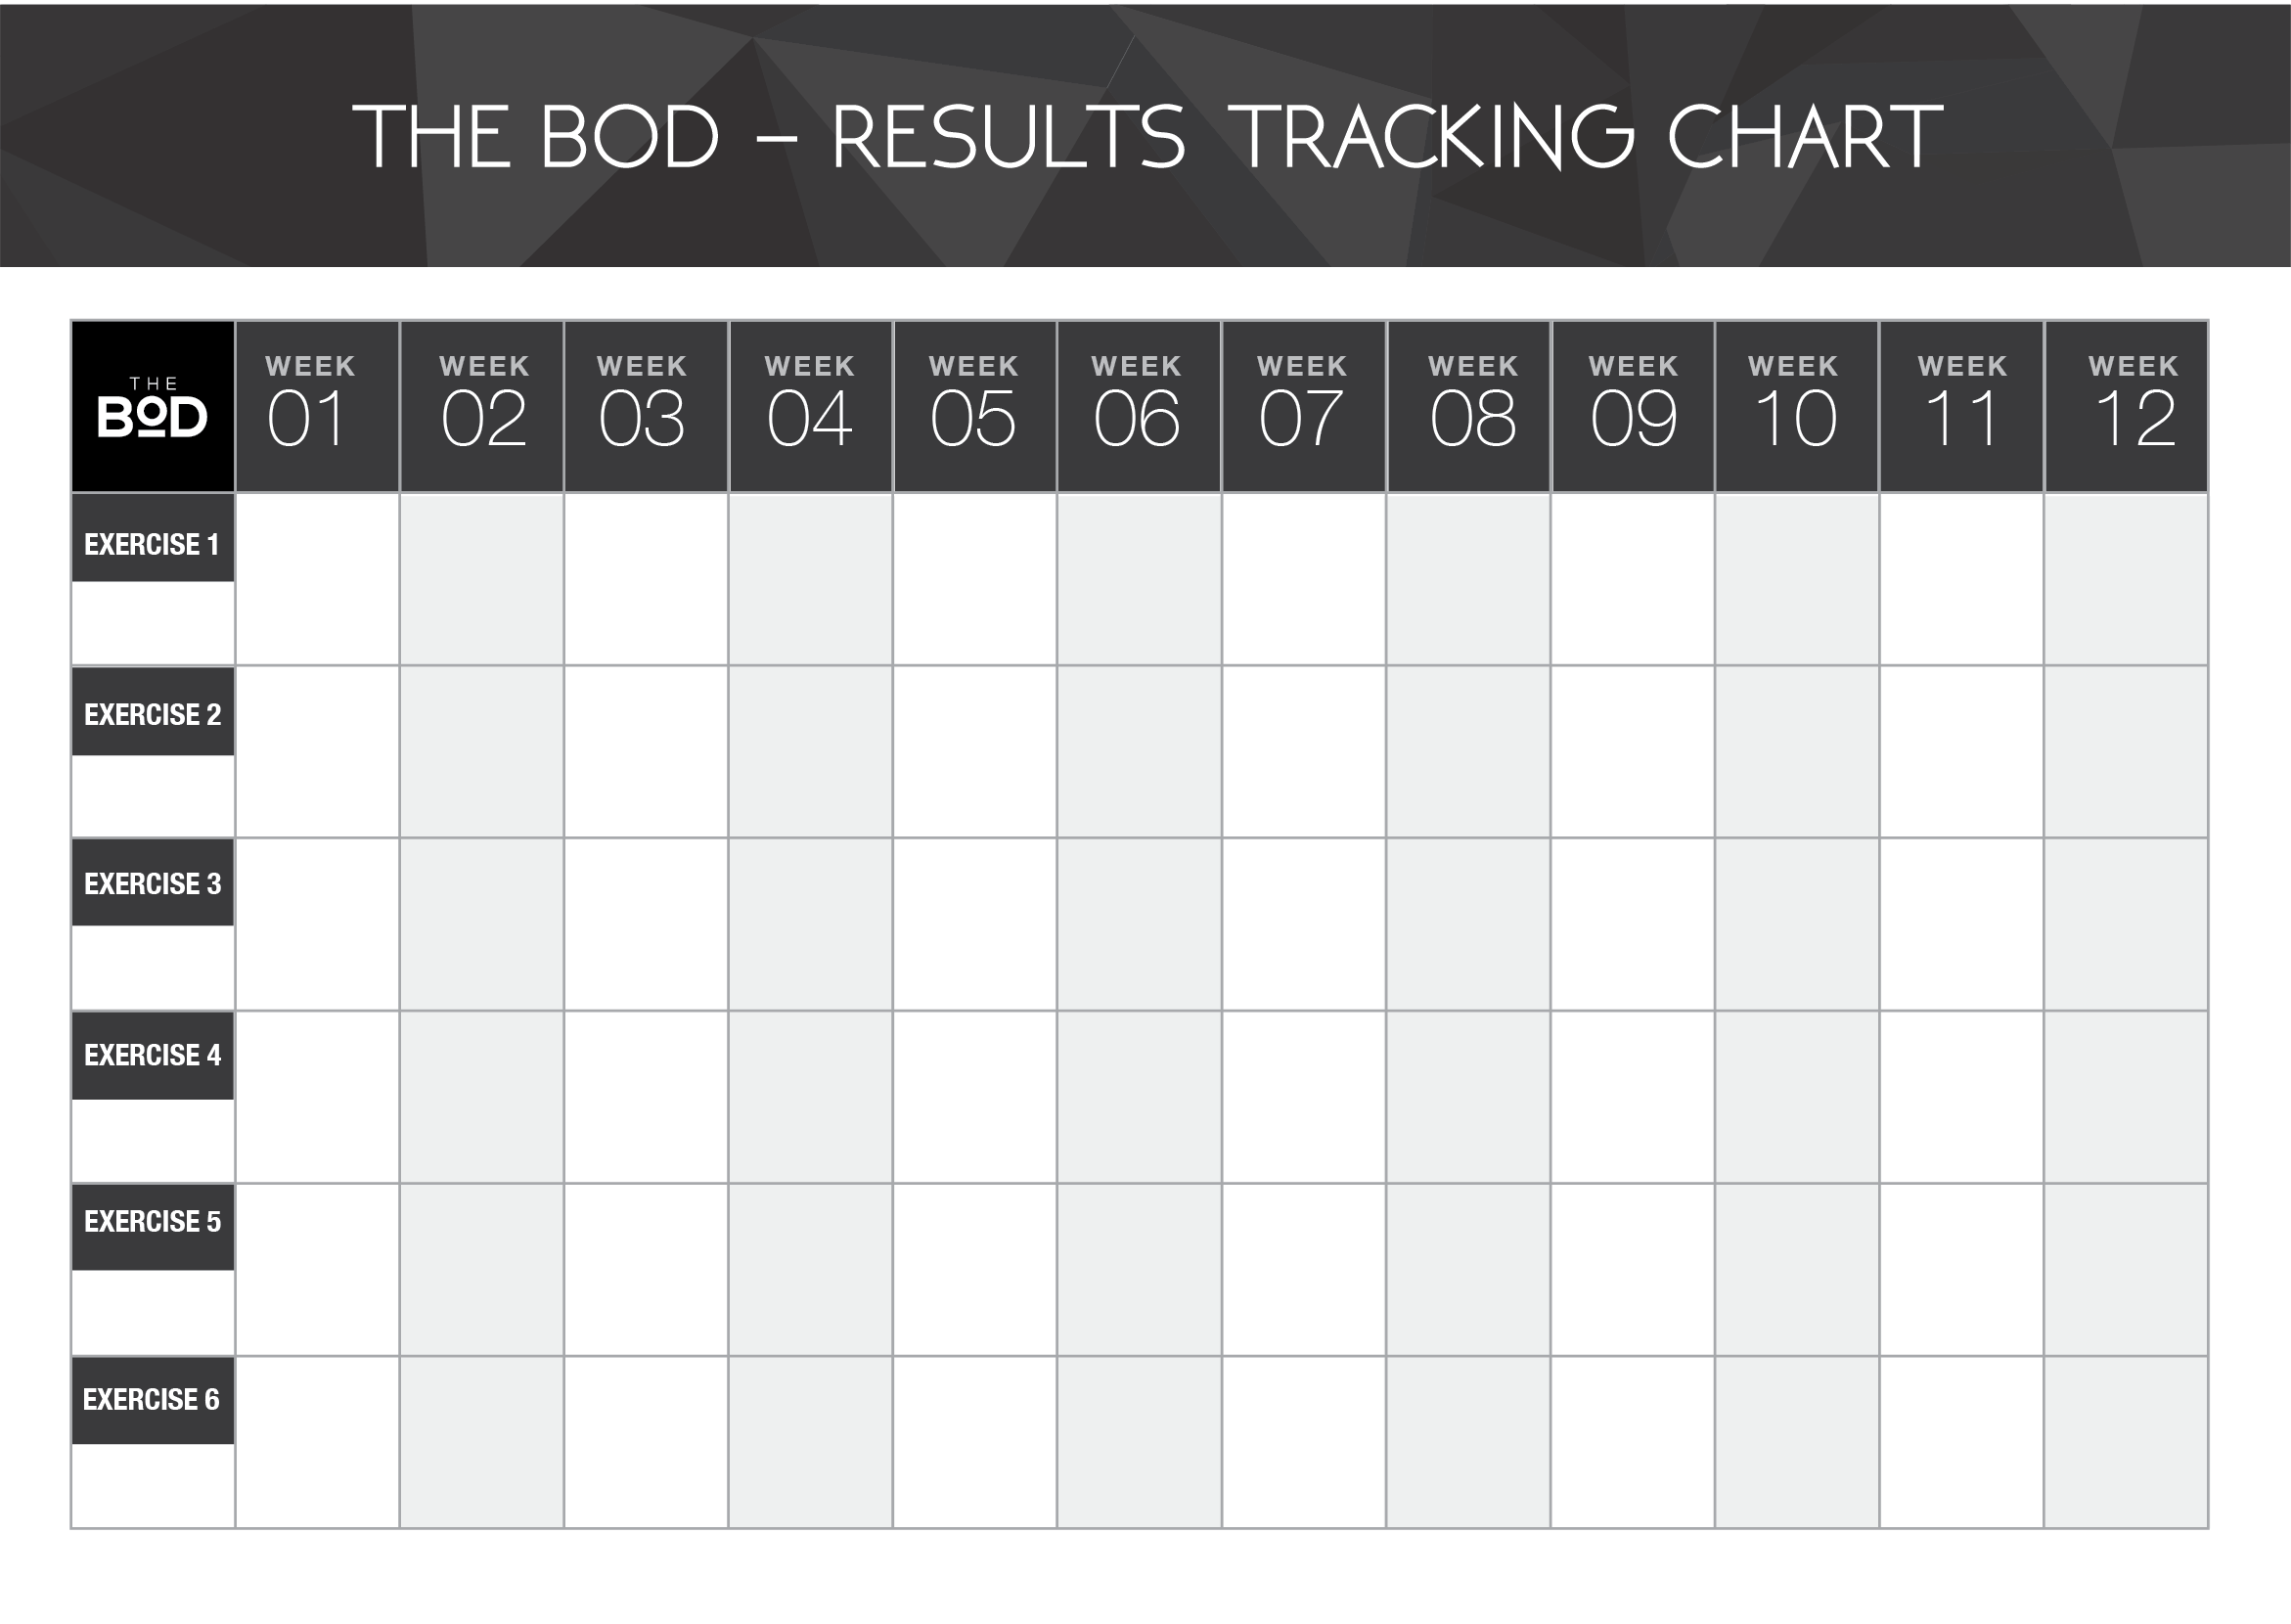 Record Chart Png - RESULTS RECORD CHART – The Bod